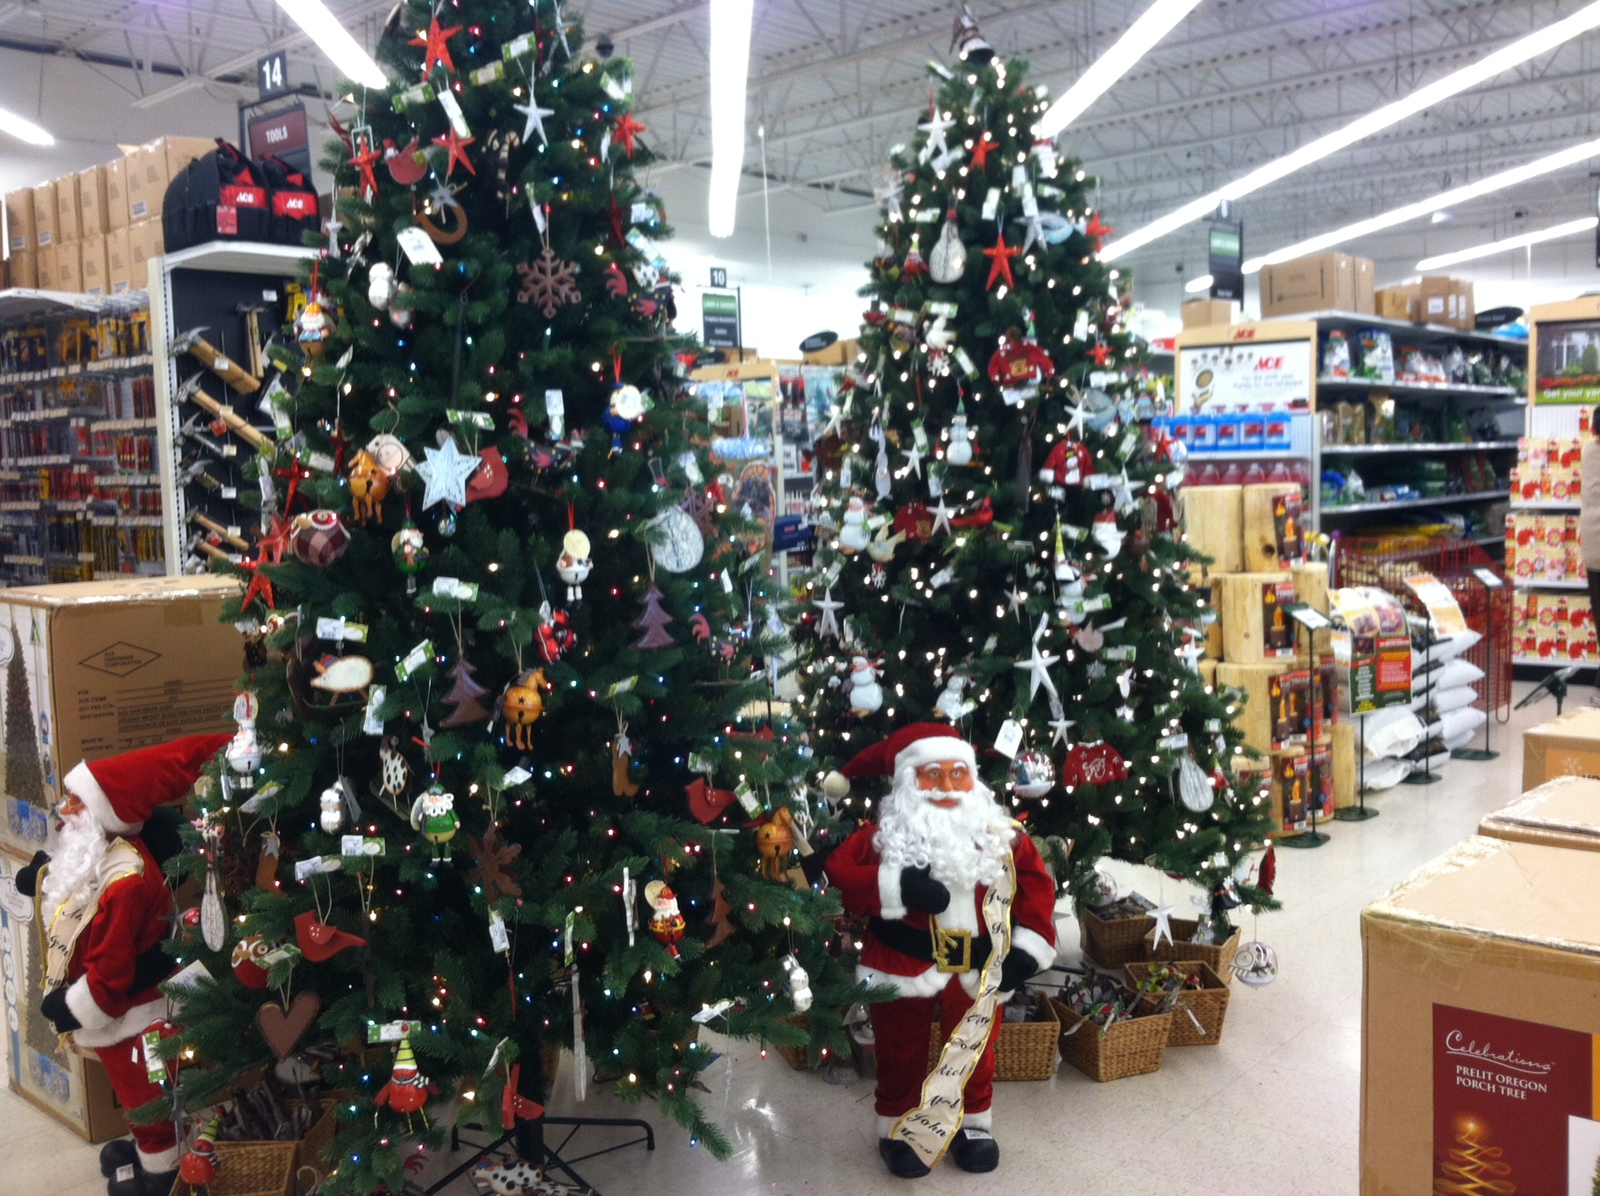 santa decorations santa decorations artificial christmas trees - Christmas Tree With Lights And Decorations